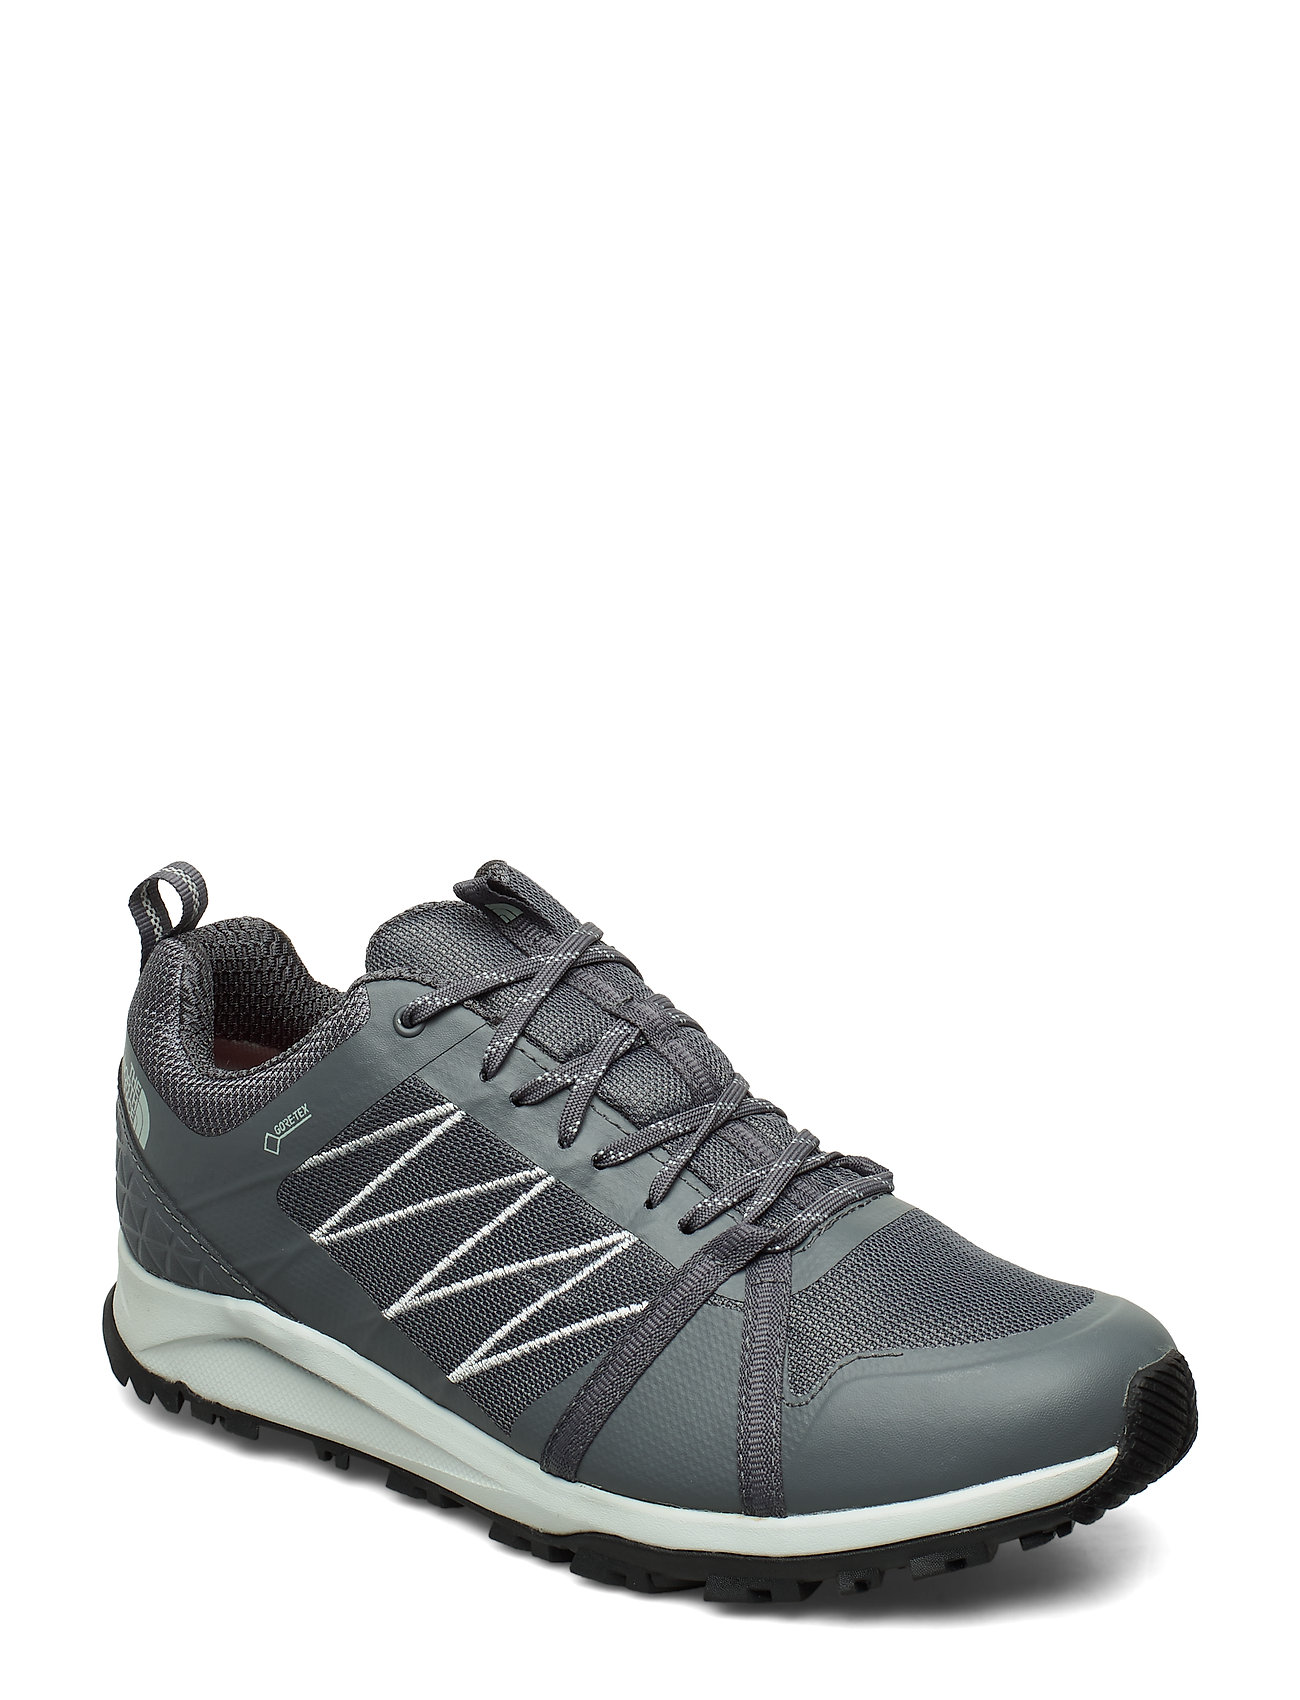 The North Face M LW FP II GTX - ZNCGRY/HGHRS GR